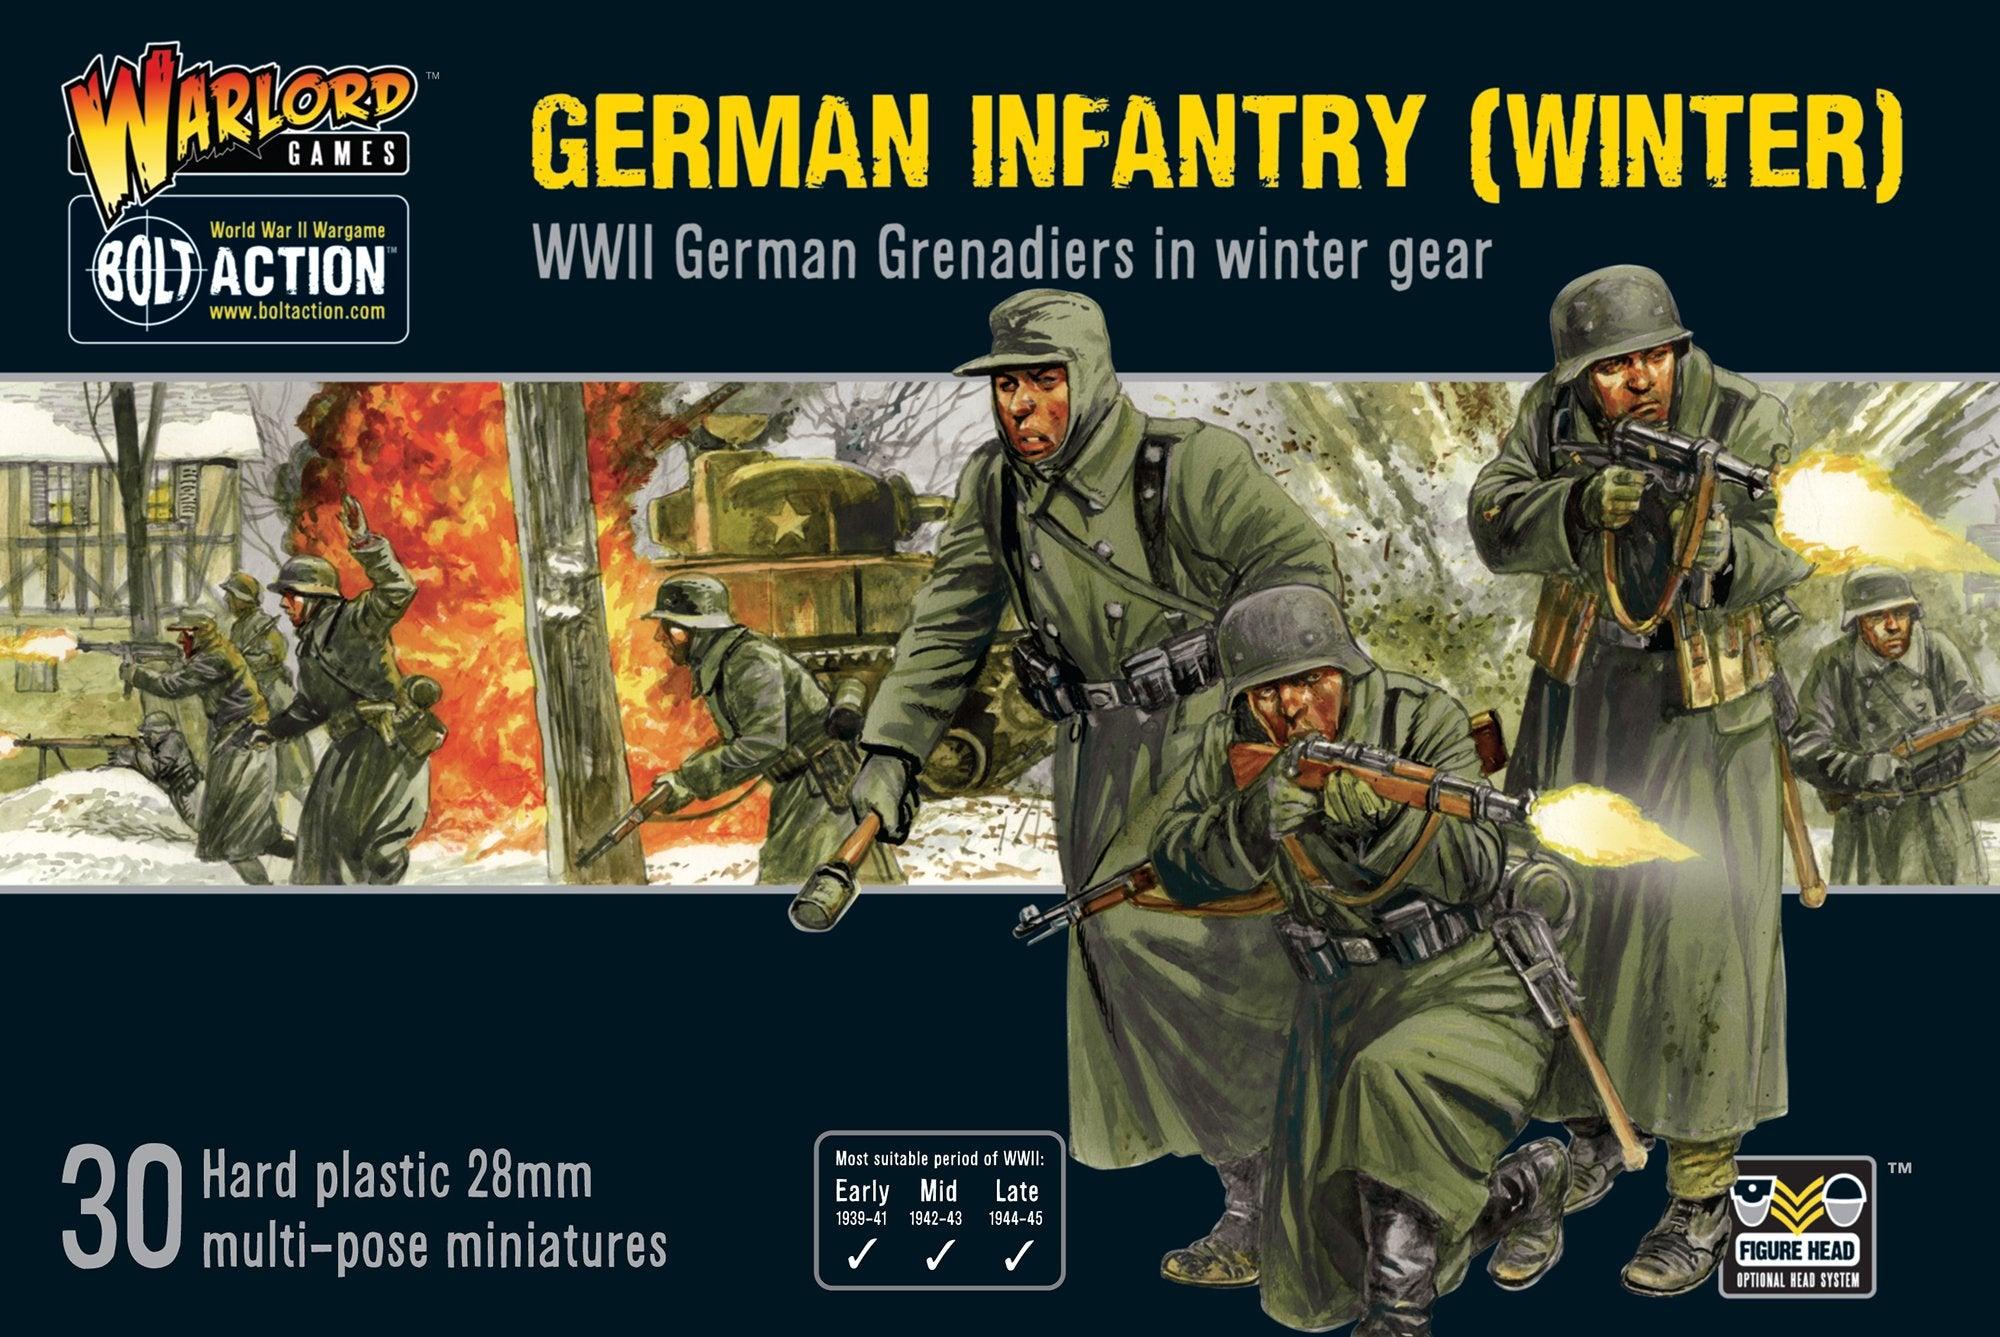 Germans Infantry (Winter)